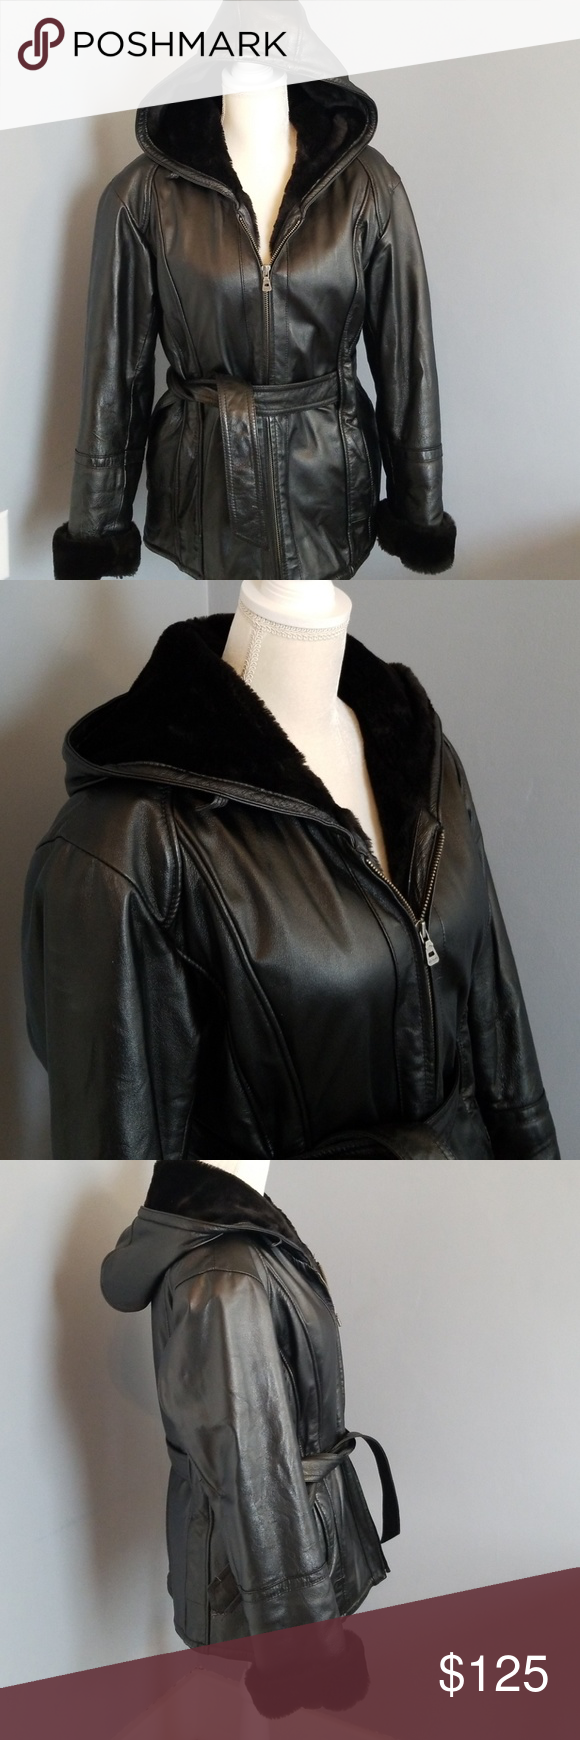 Wilson's Leather Black Hooded Heavy Winter Coat Made for